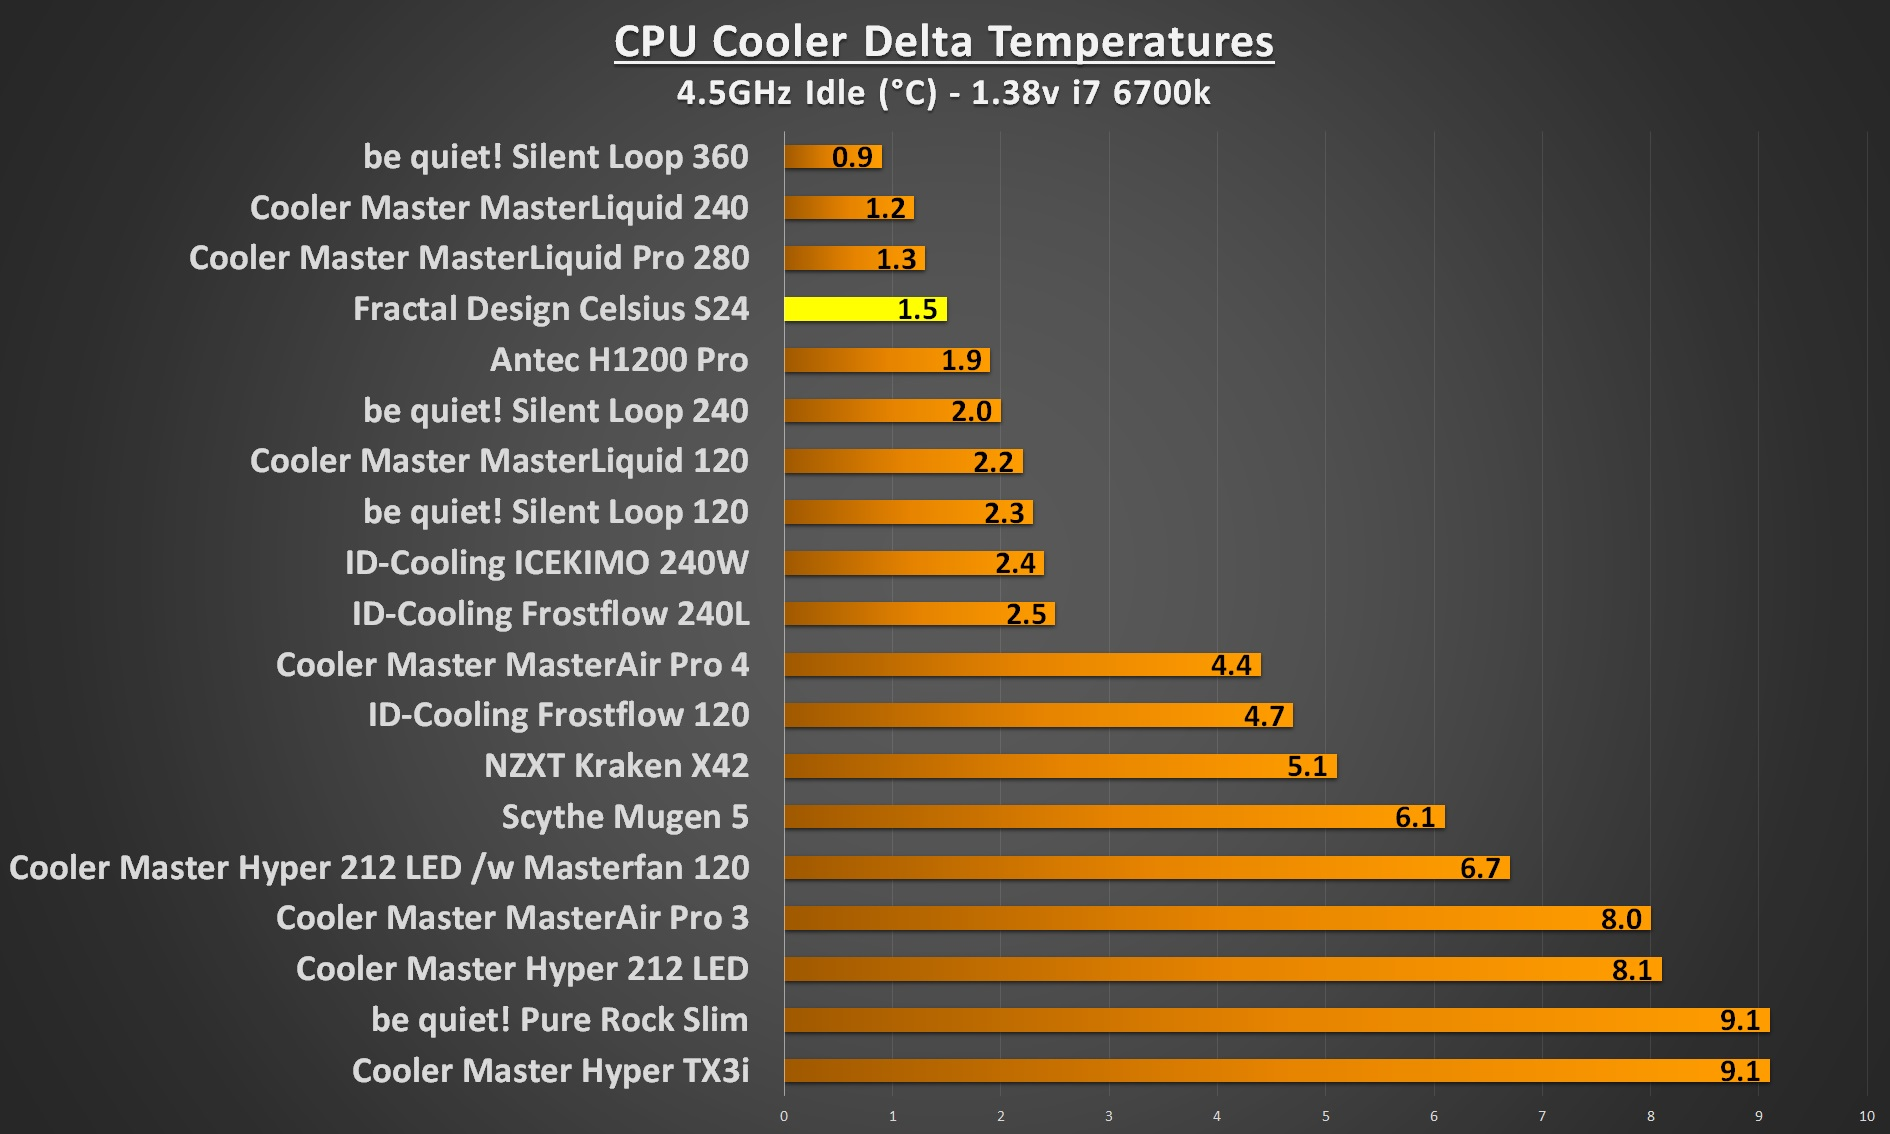 Fractal Design Celsius S24 4.5Ghz idle